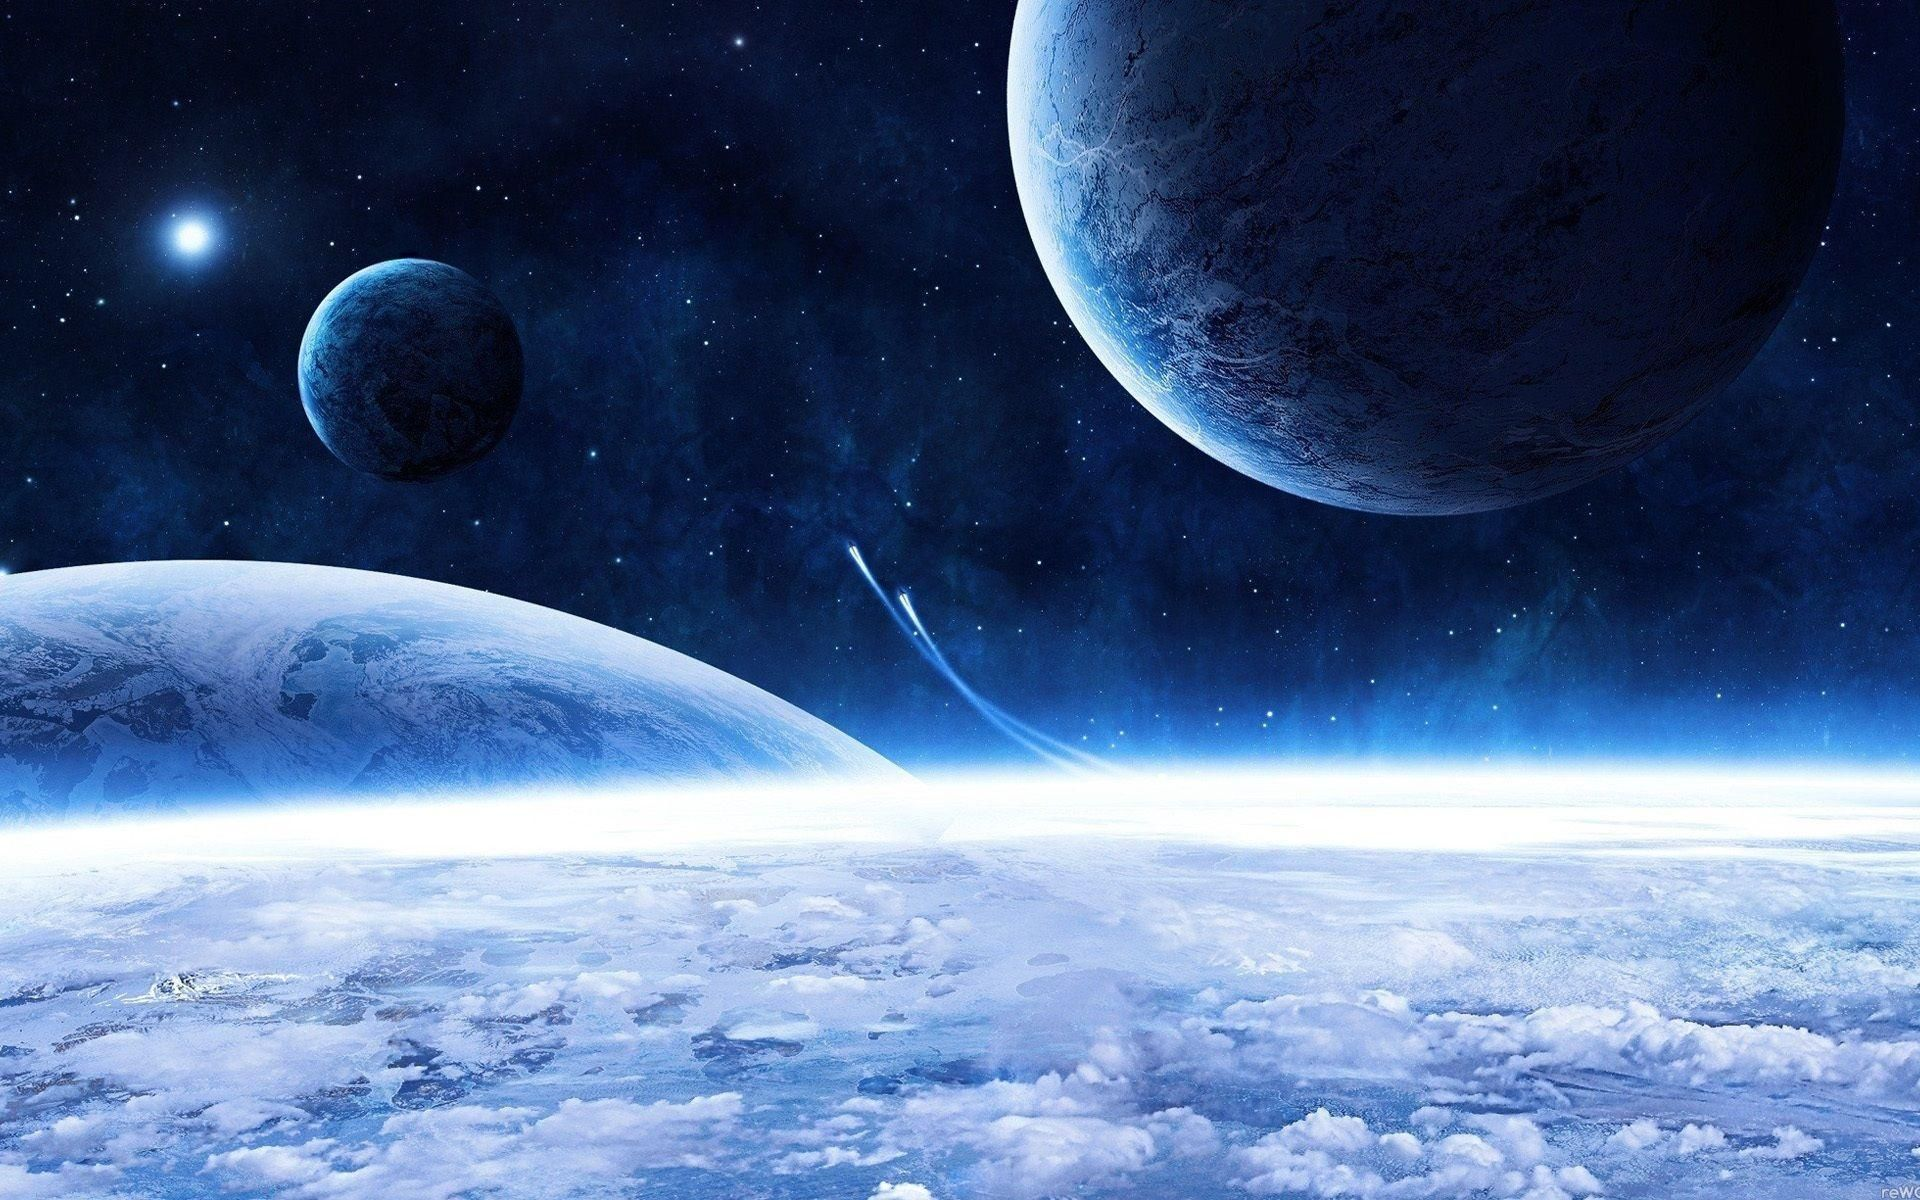 Blue Planet Collection See All Wallpapers Wallpapers Background Space Planets Wallpaper Hd Wallpaper Cool Wallpapers For Pc